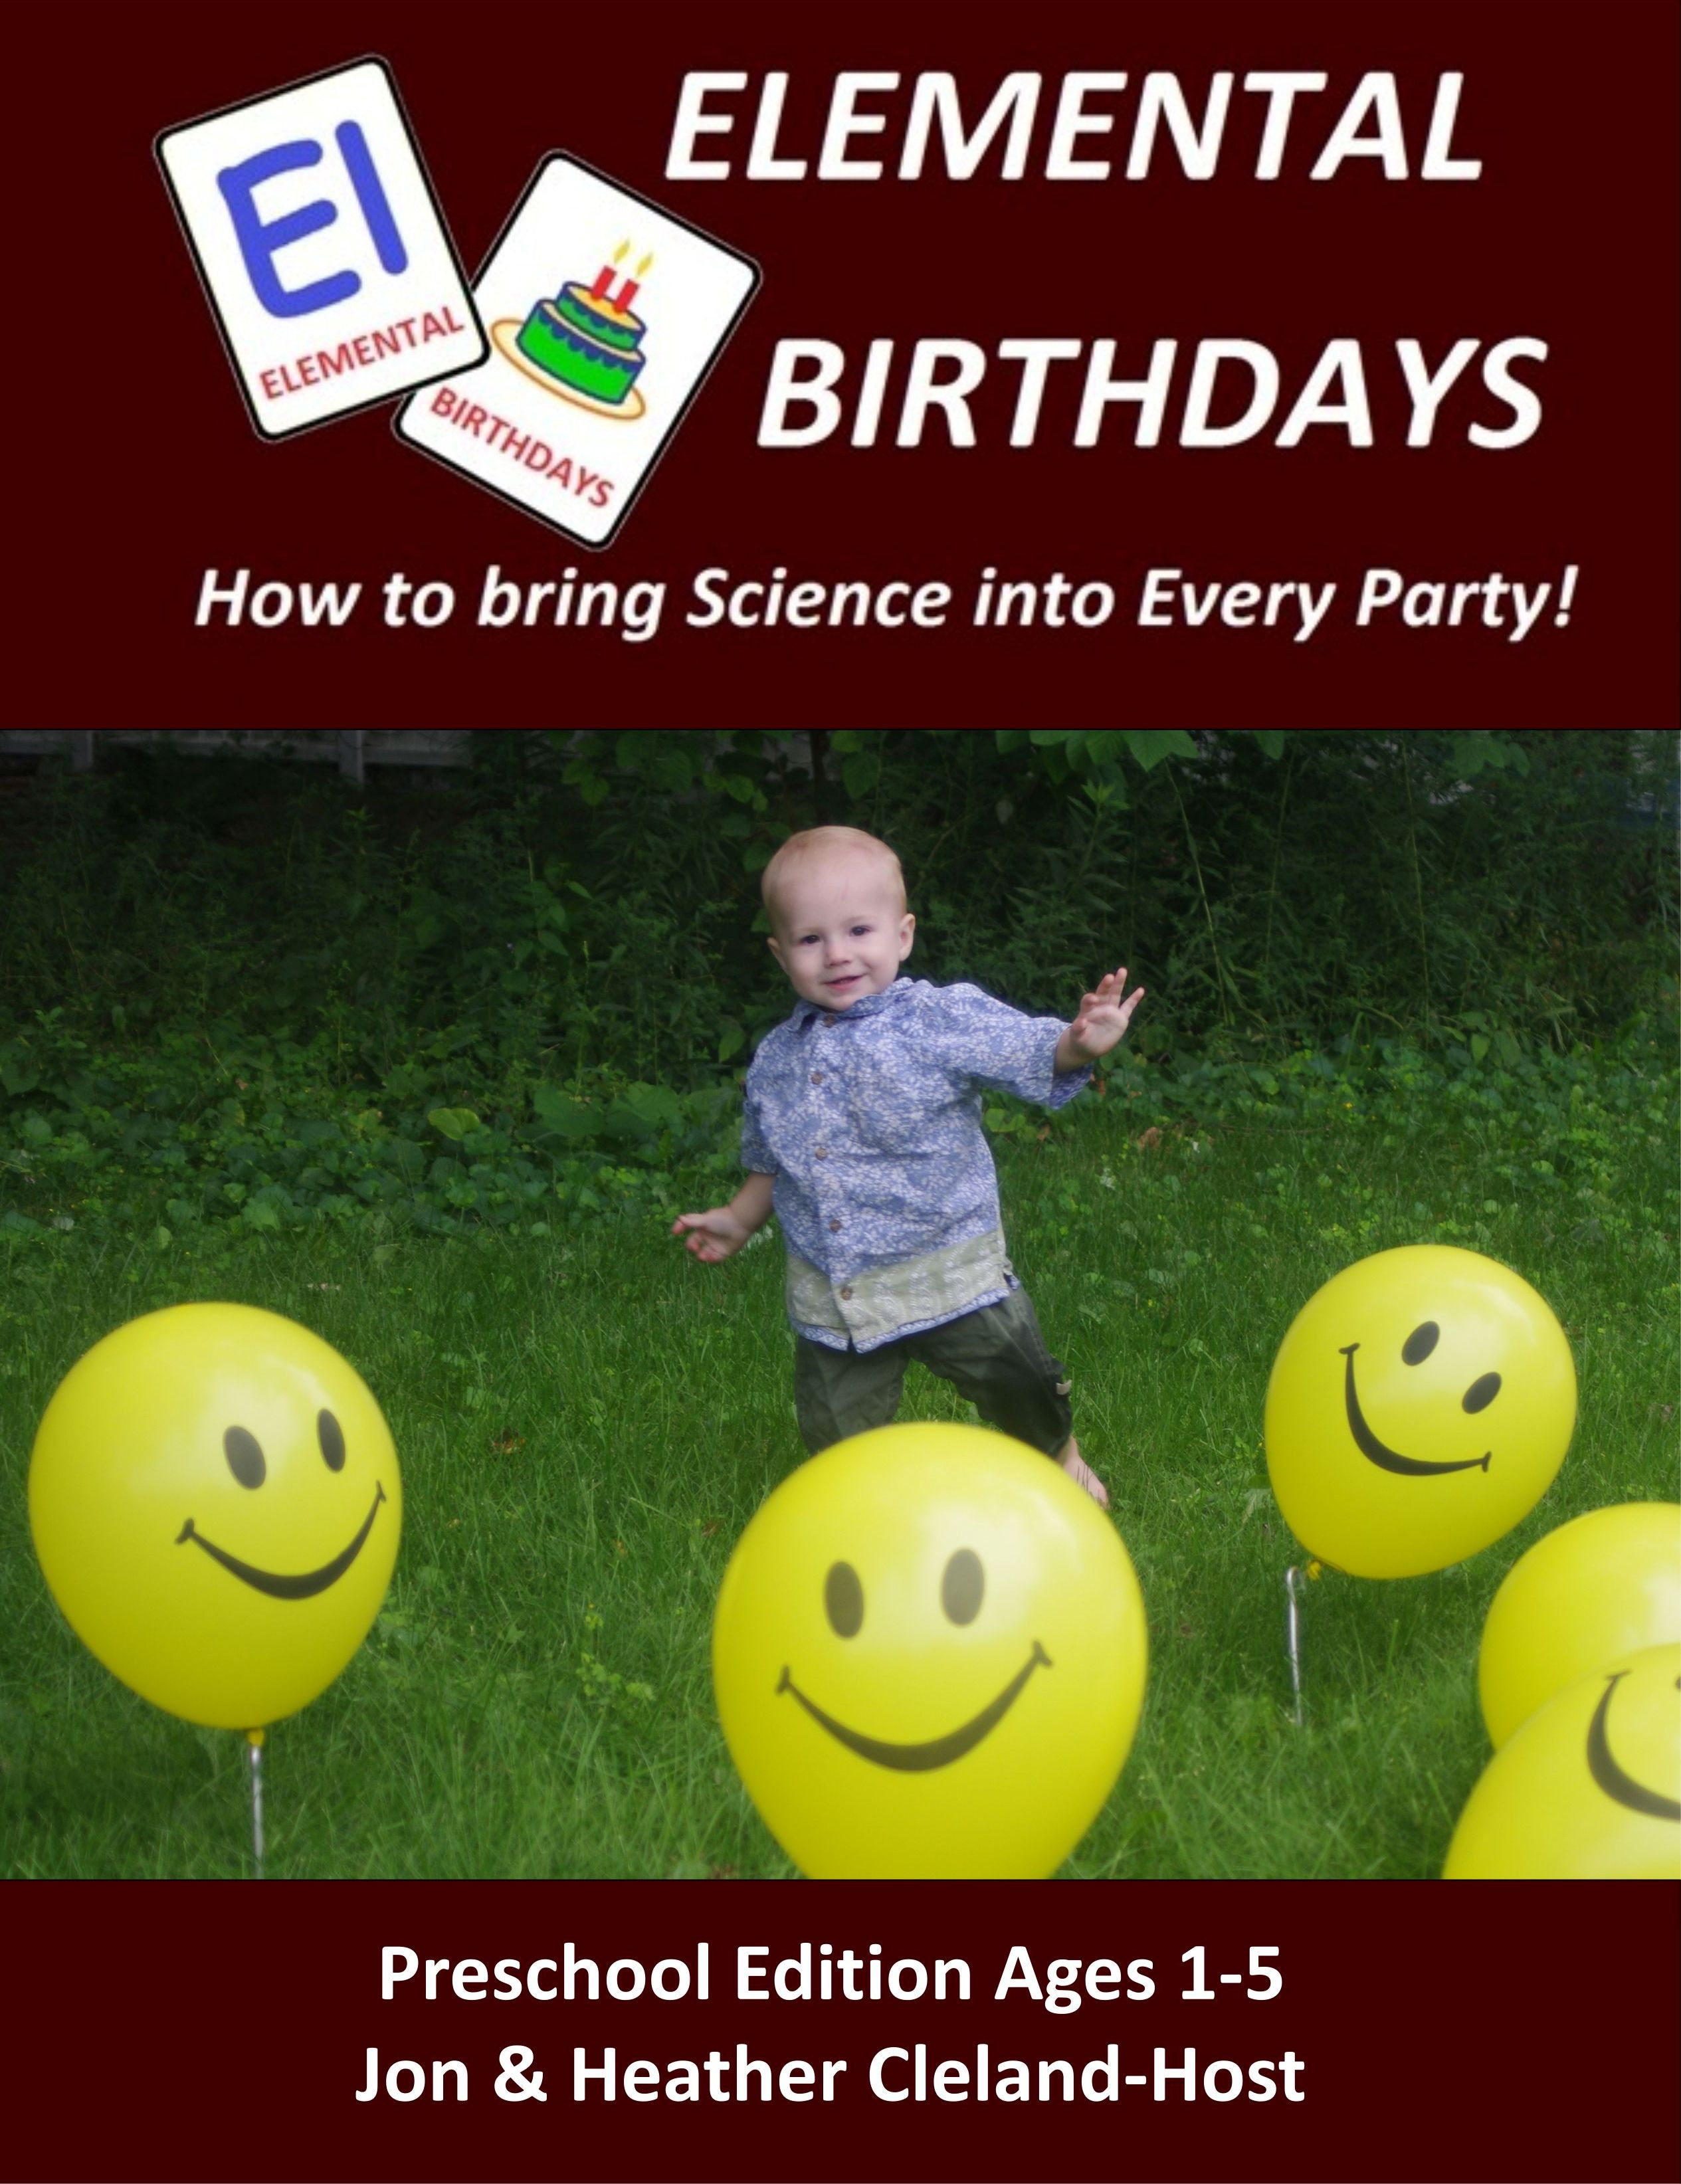 Preschool Edition of Elemental Birthdays